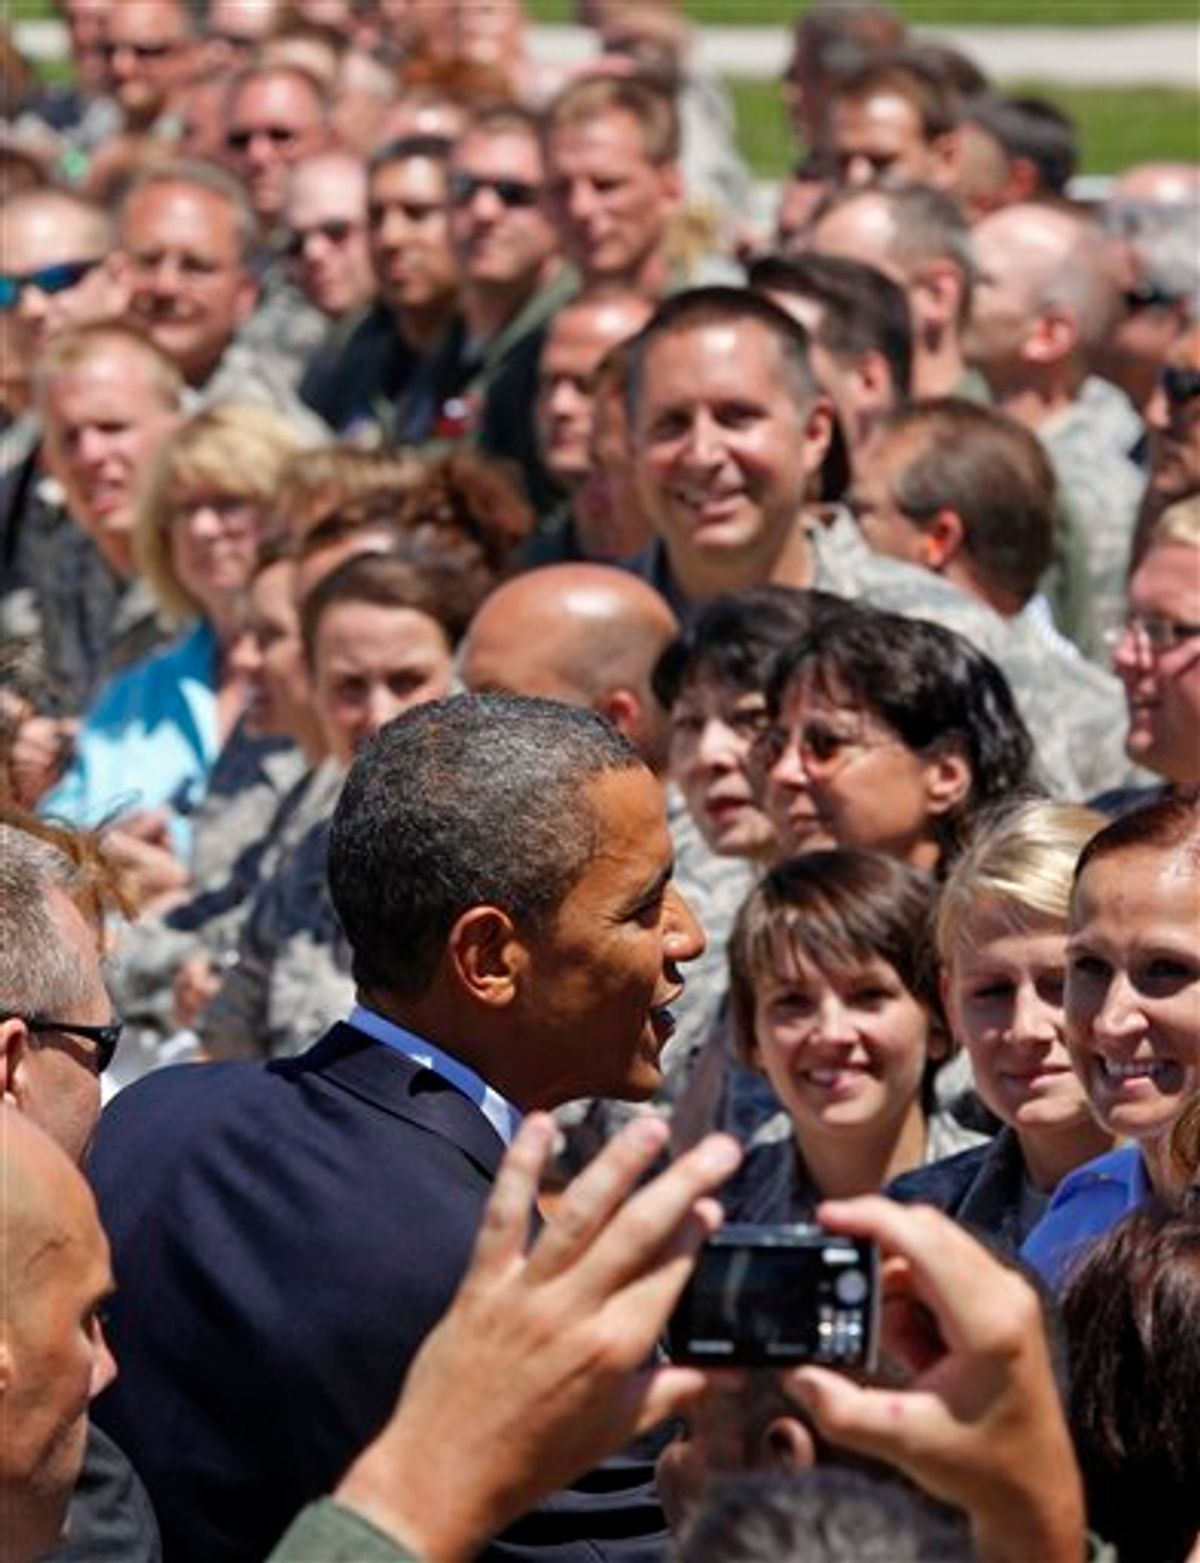 FILE - In this June 30, 2010 file photo, President Barack Obama greets members of the Wisconsin National Guards 128th Air Refueling Wing upon his arrival at Mitchell International airport in Milwaukee, Wis. When President Barack Obama makes his third Wisconsin visit in a little over two months Monday, he will get a chance to shore up his base at a Labor Day rally in a state where his approval ratings are dipping and fellow Democrats face tough re-election bids.  (AP Photo/Jeffrey Phelps, File) (AP)